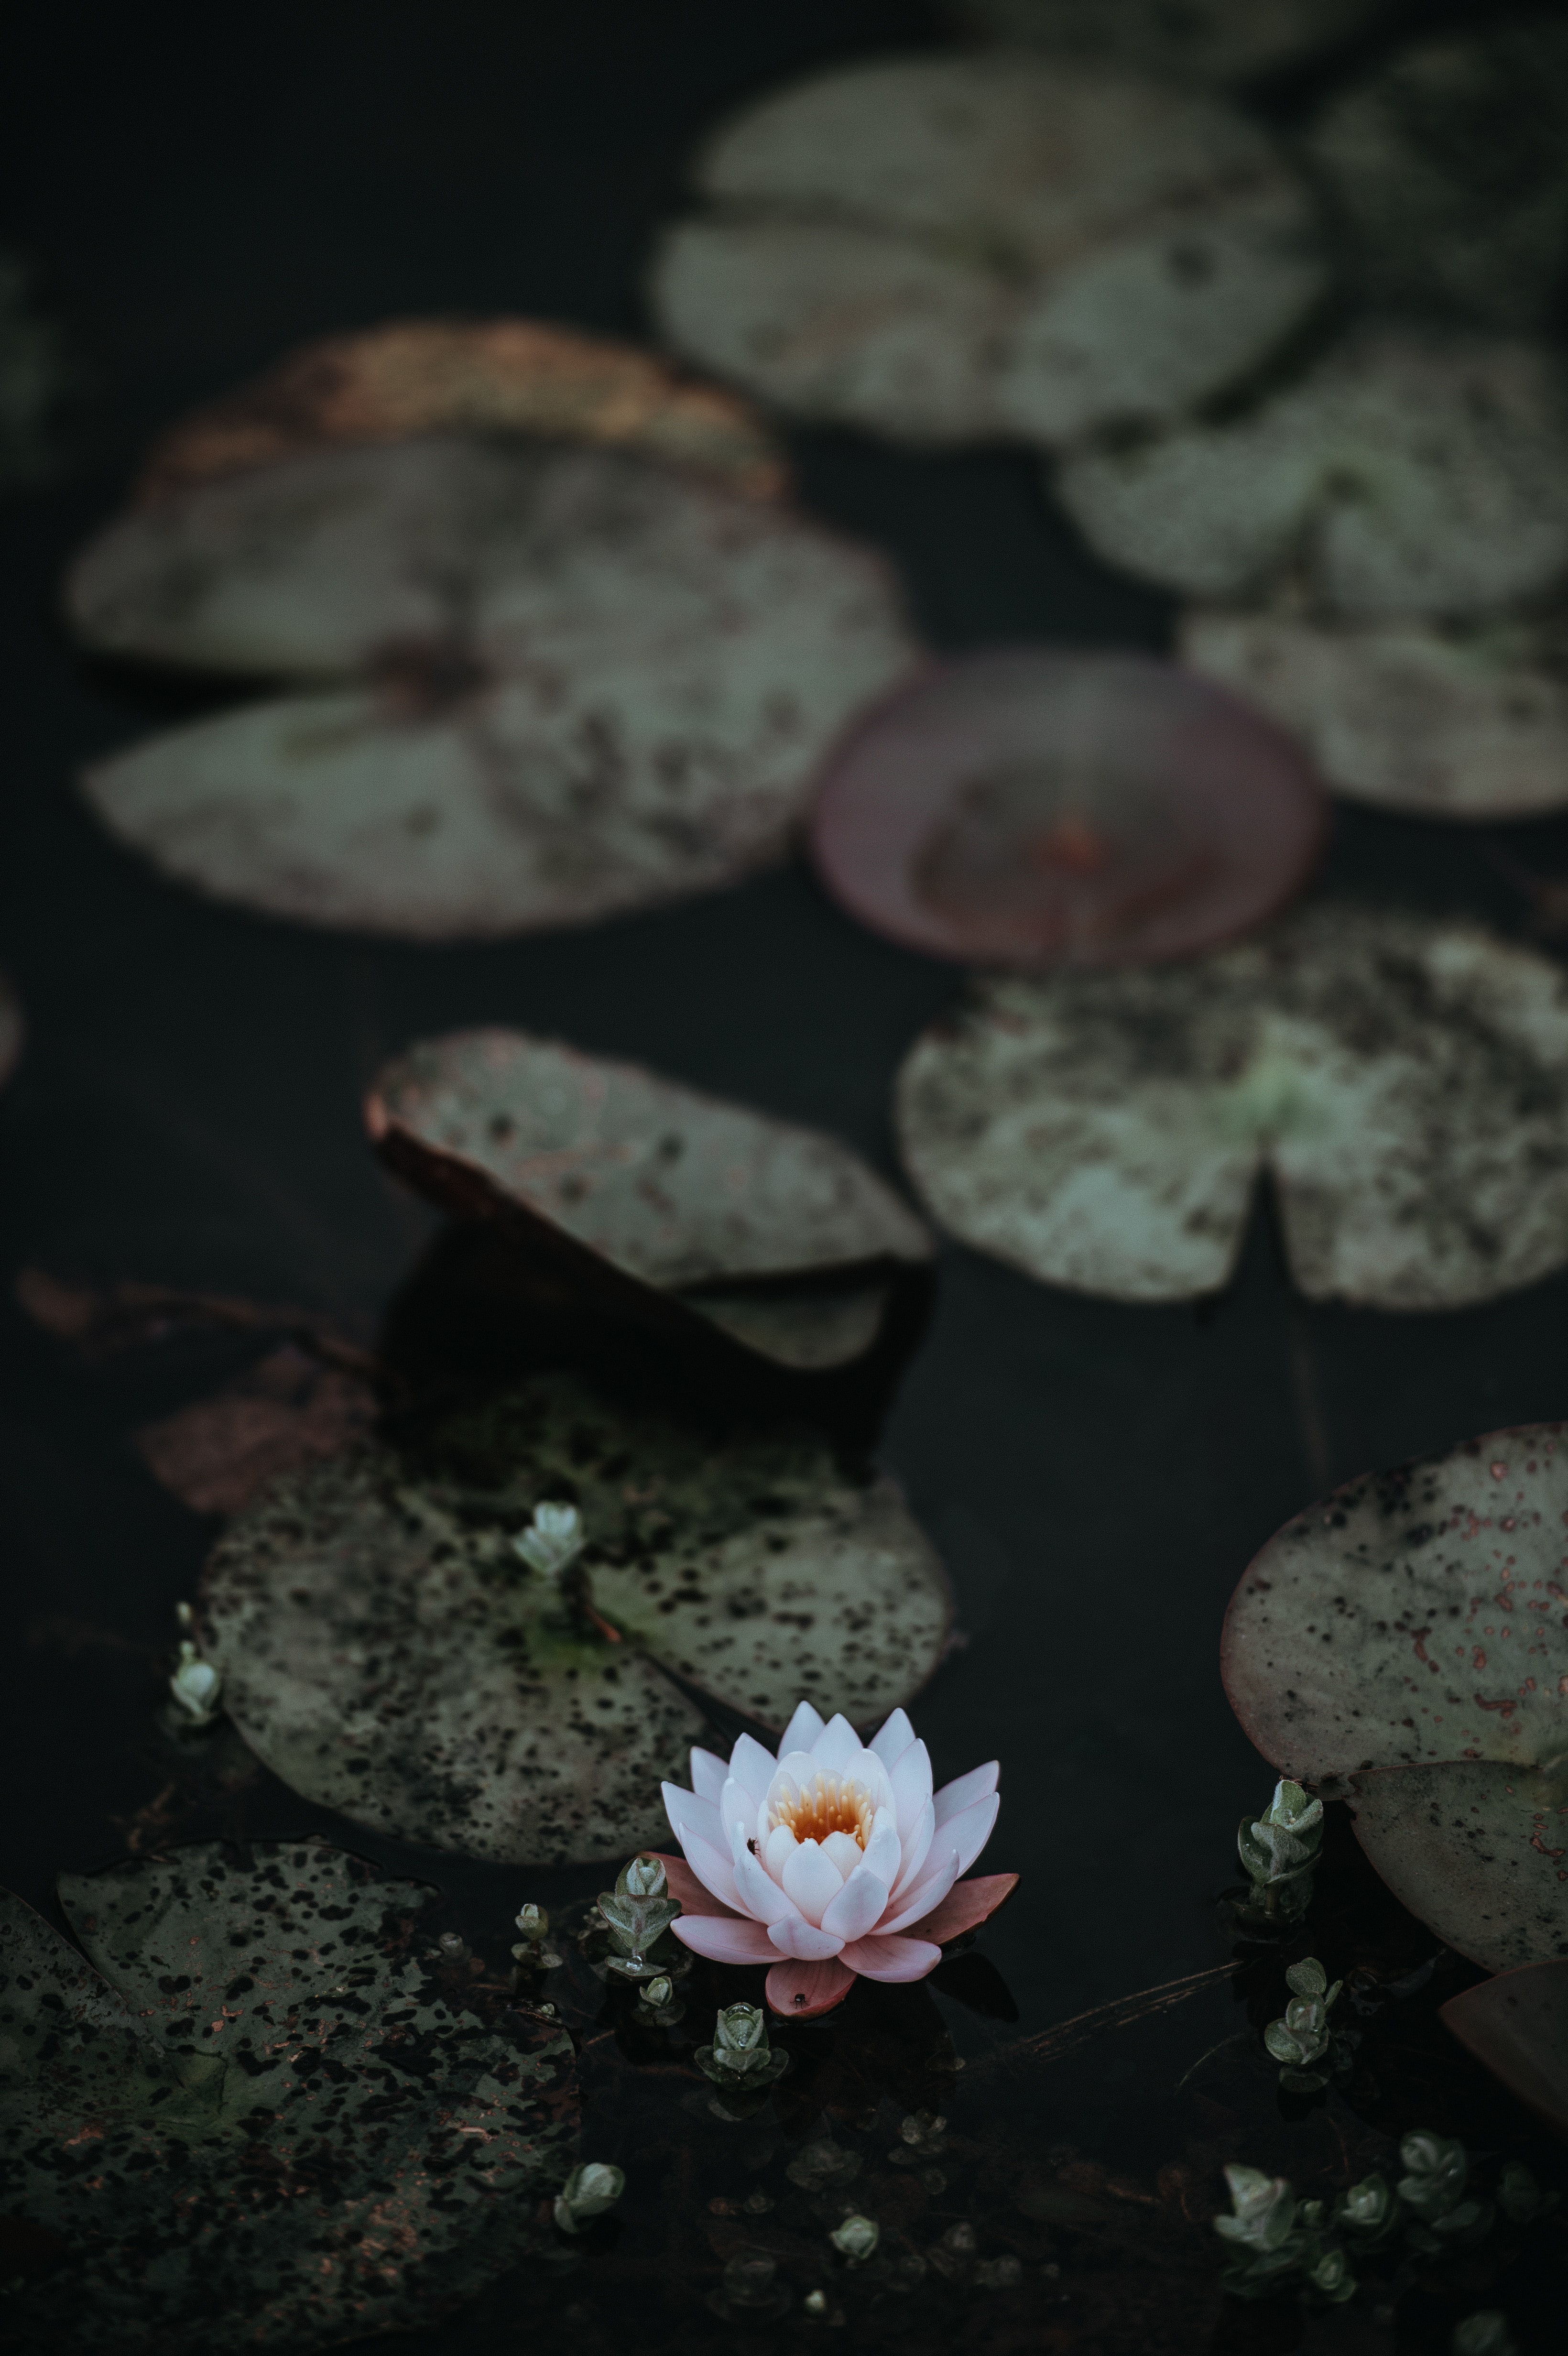 white and pink waterlily in bloom on water near green lily pads